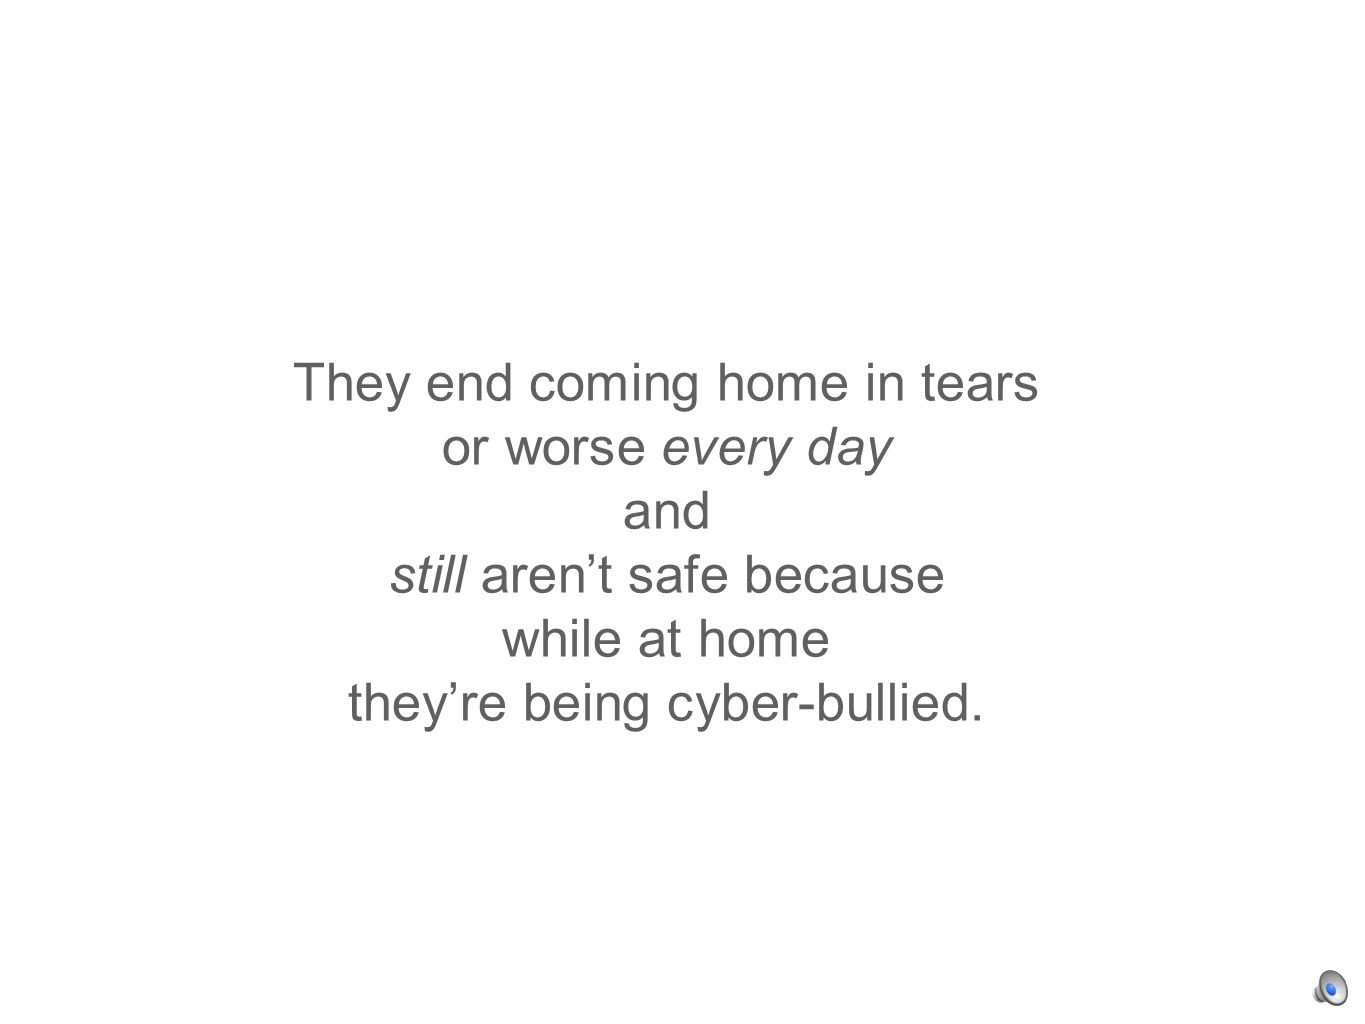 They end coming home in tears or worse every day and still arent safe because while at home theyre being cyber-bullied.